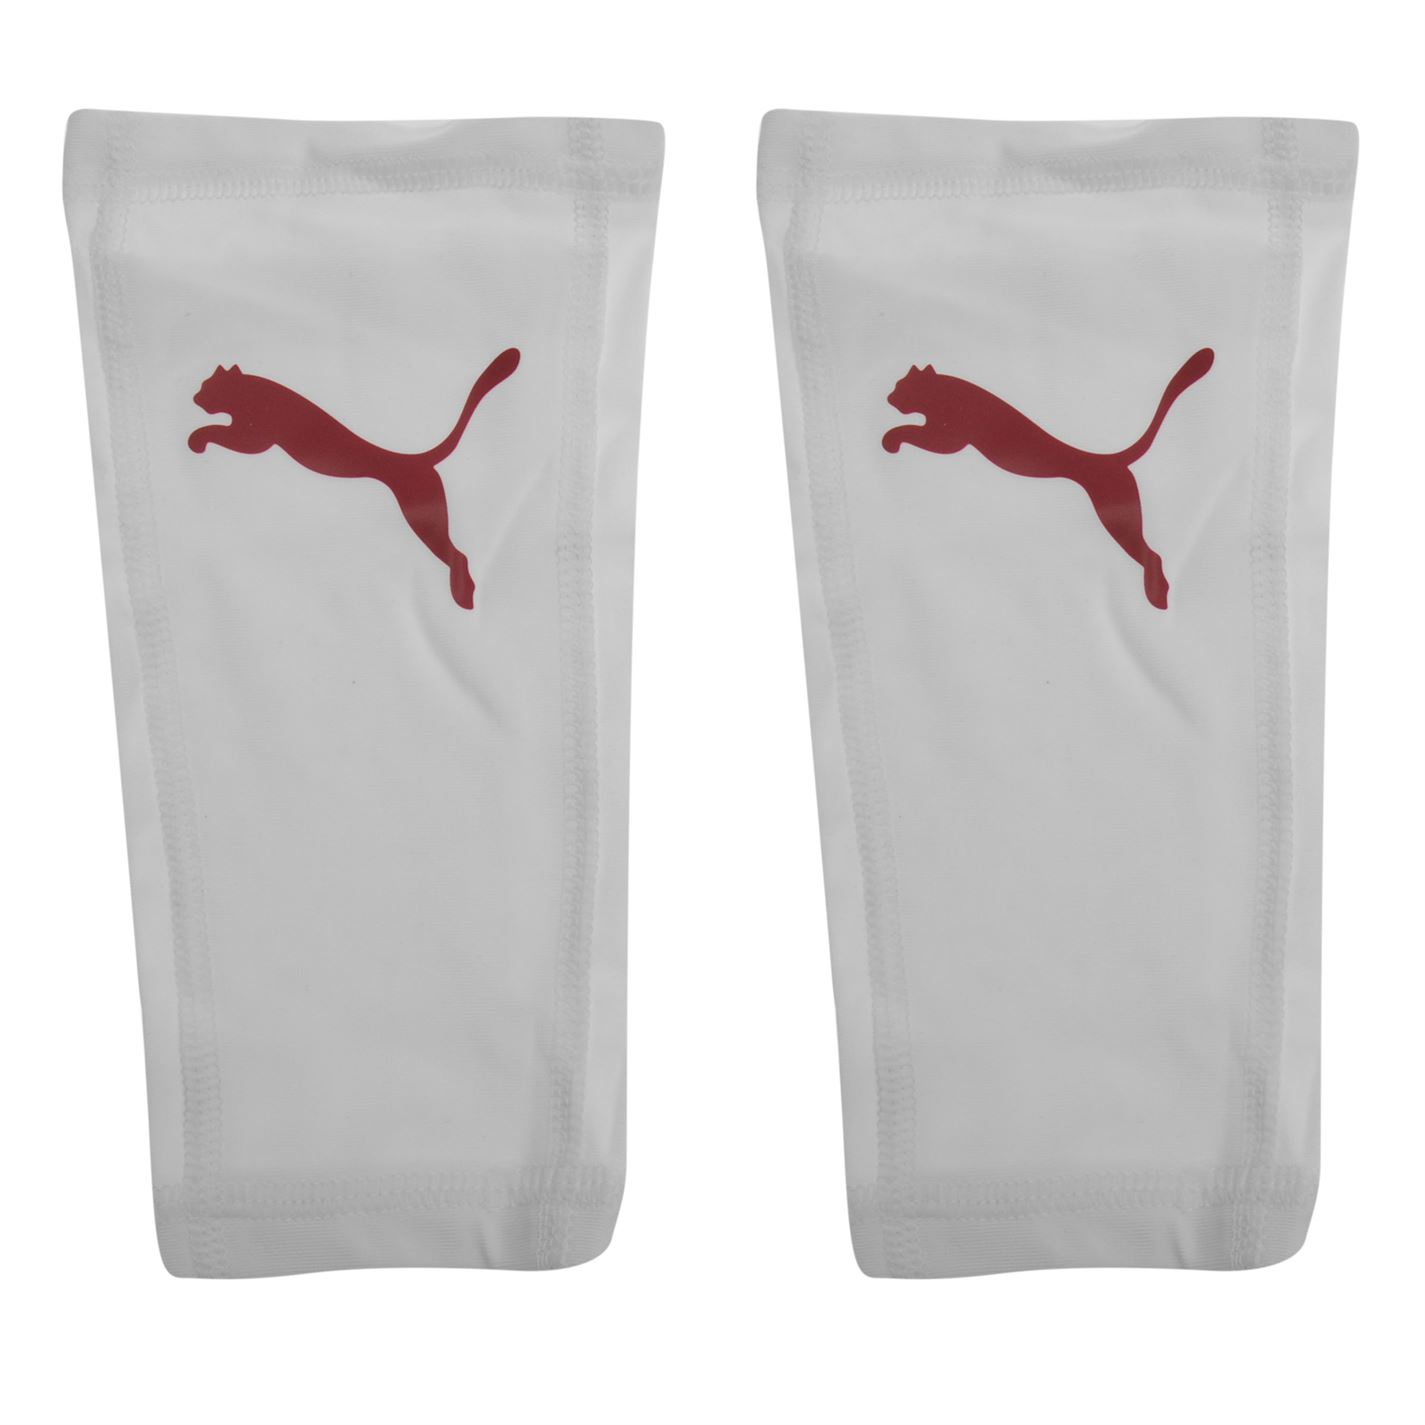 Puma-Unisex-One-Slip-Shin-Guard-In-Pad-Lightweight-Football thumbnail 22